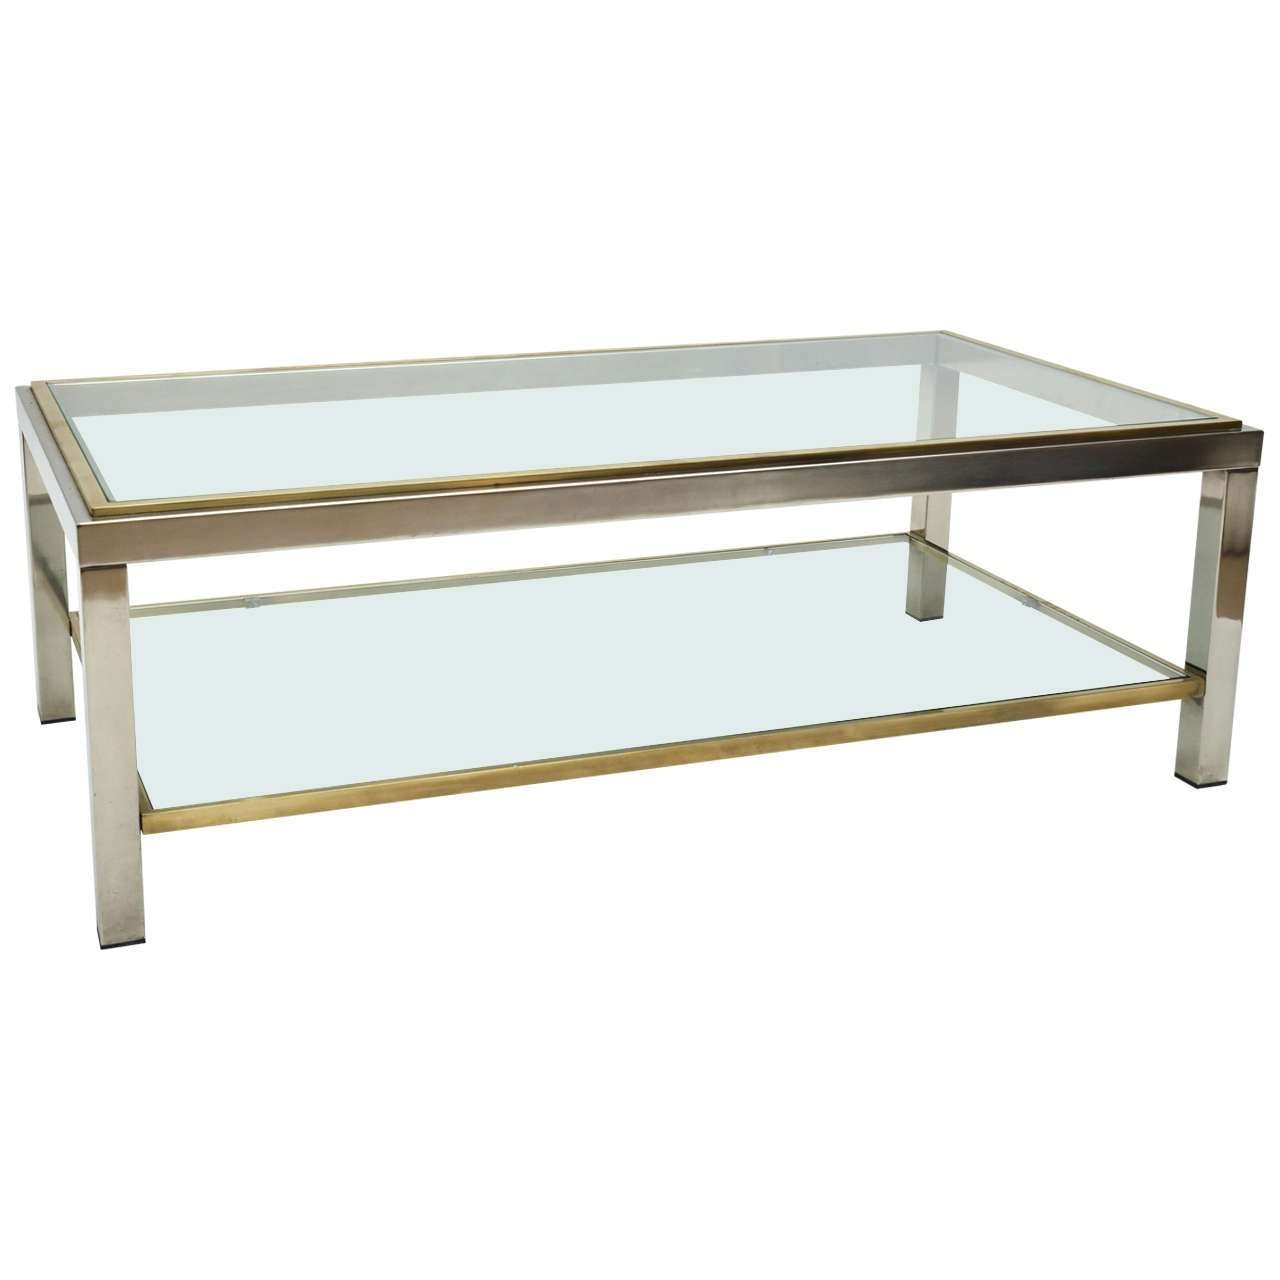 Popular Modern Chrome Coffee Tables Intended For Glass And Chrome Coffee Table – Writehookstudio (View 15 of 20)